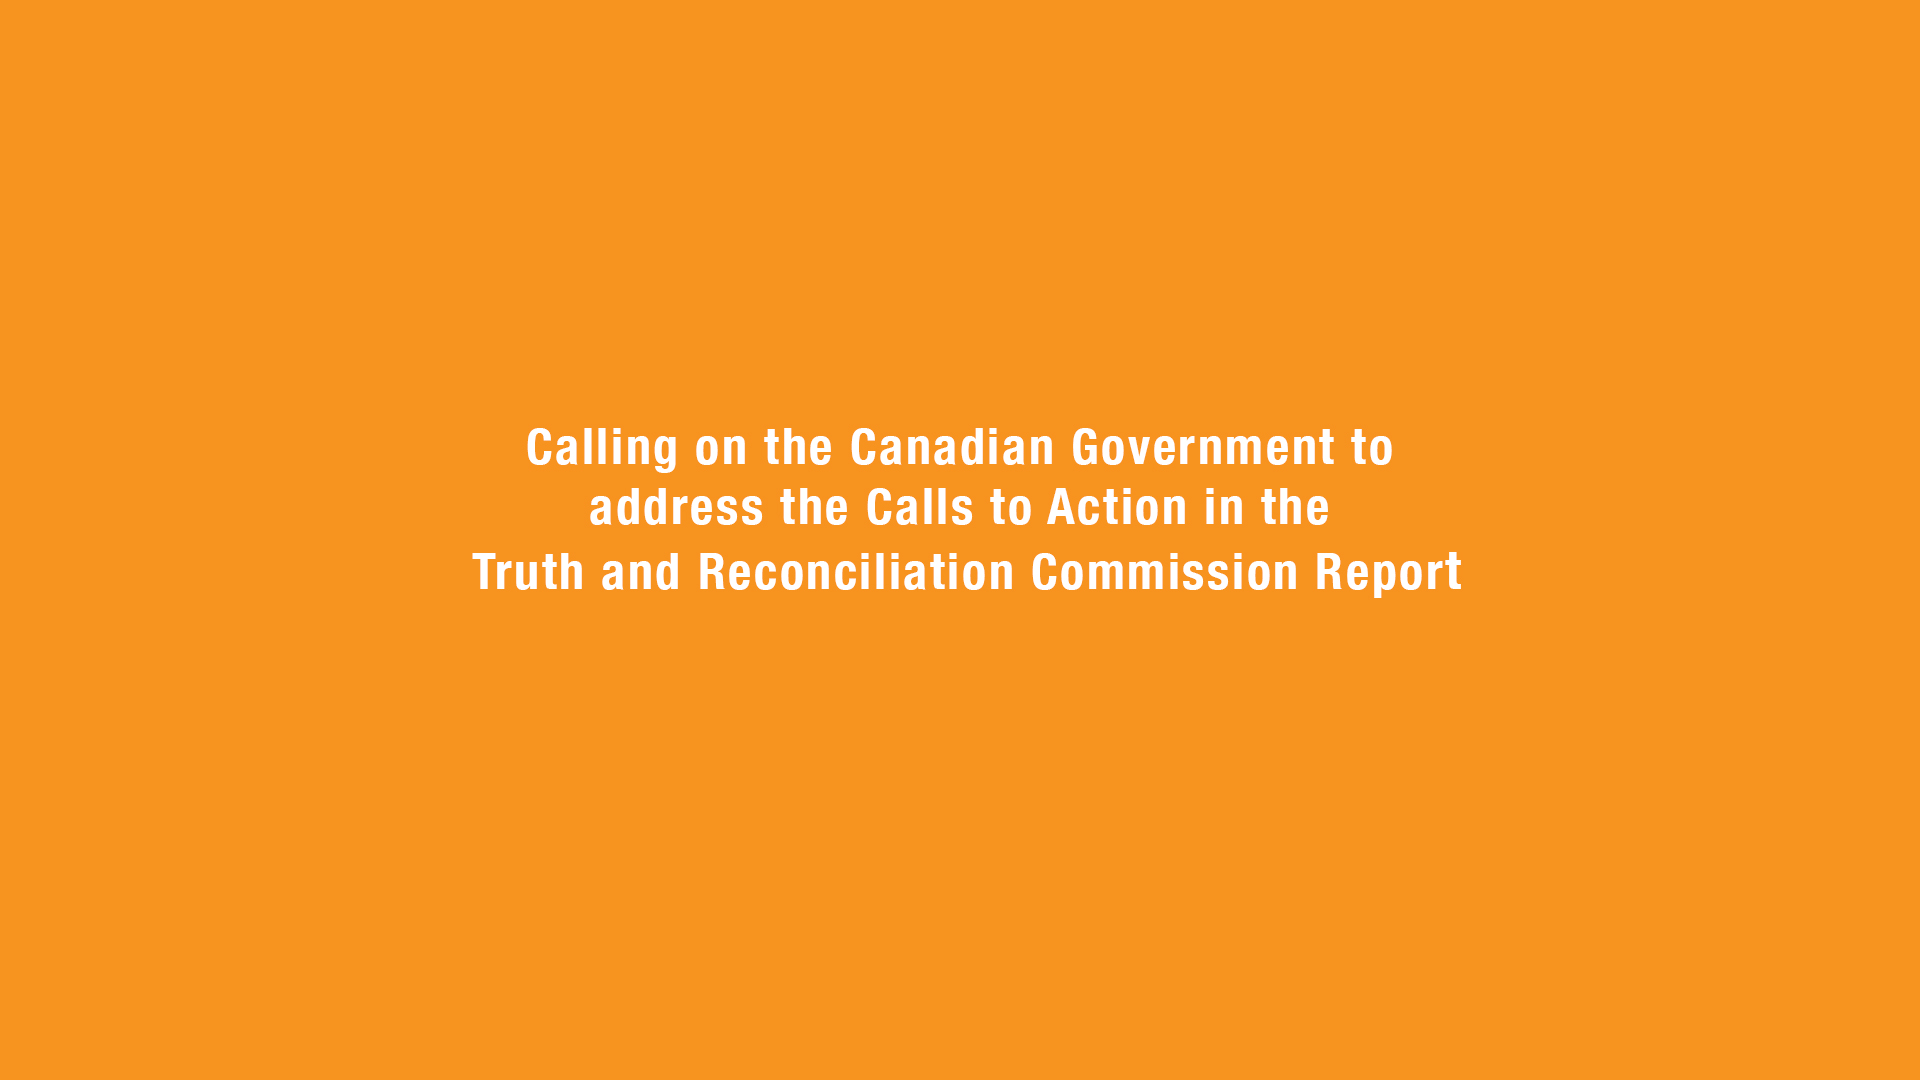 Calling on the Canadian Government to address the Calls to Action in the Truth and Reconciliation Commission Report